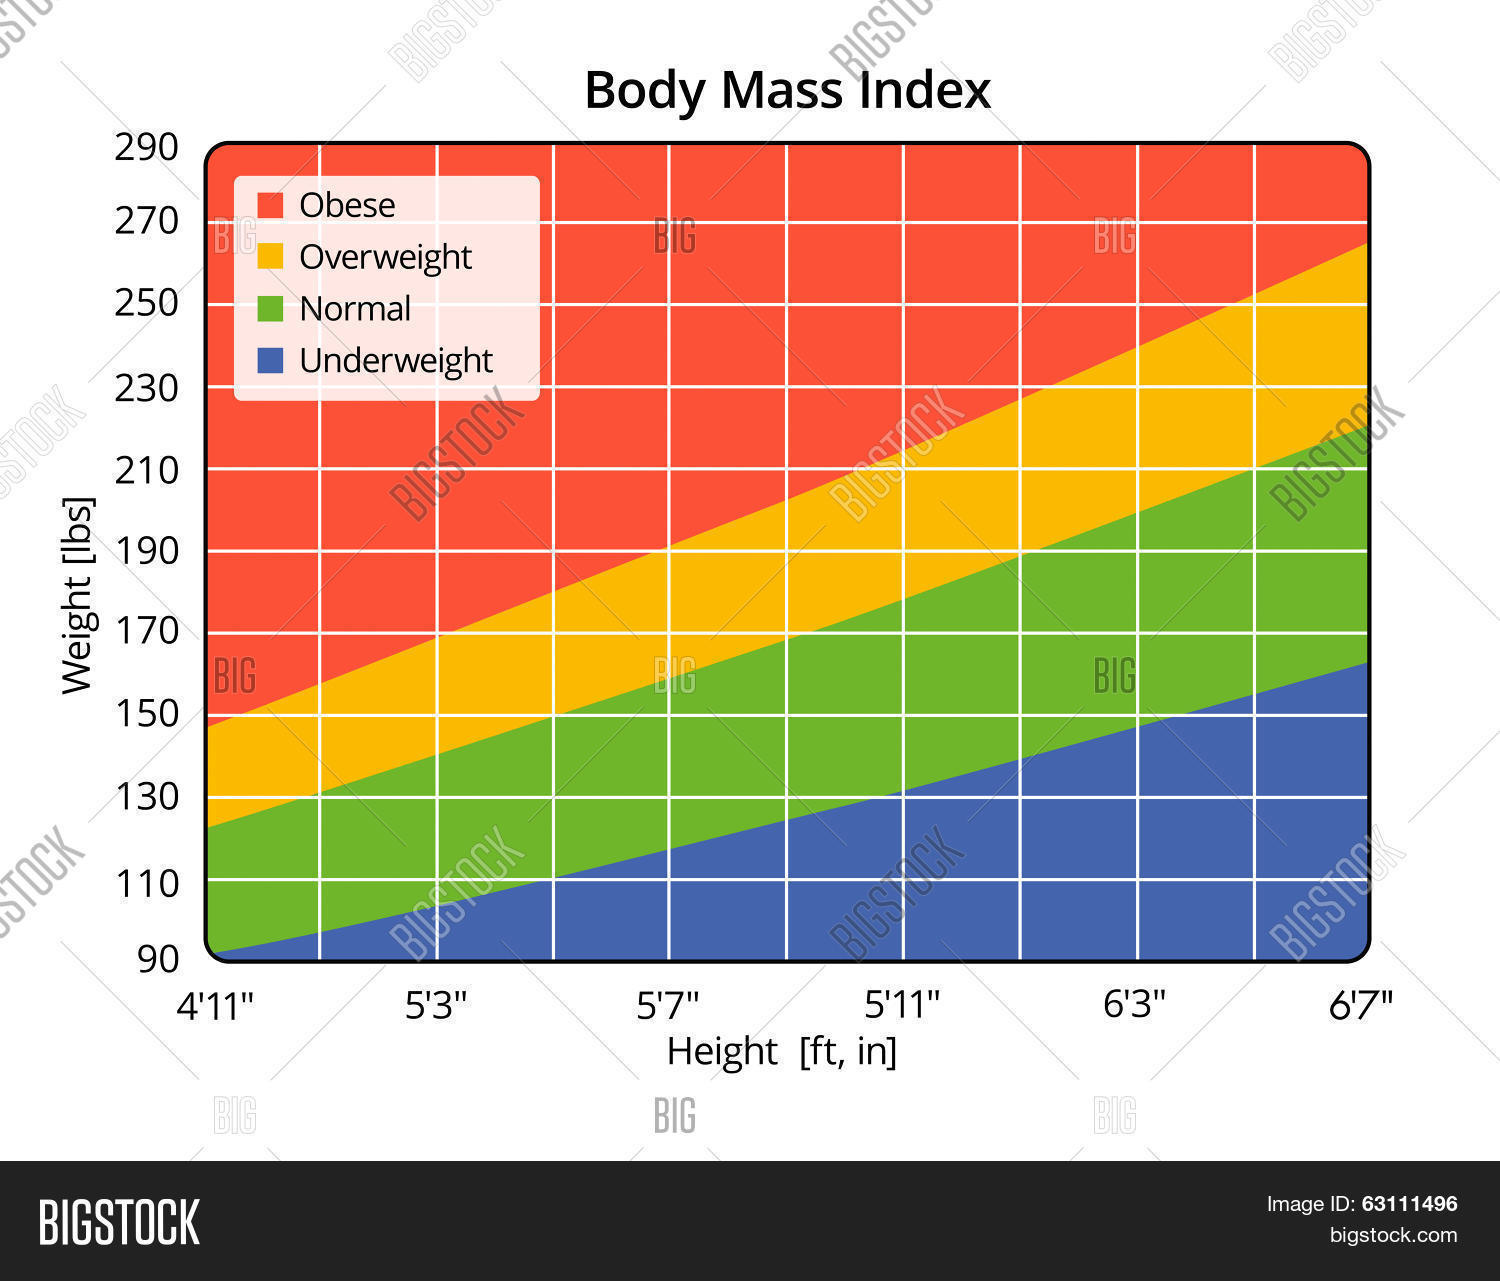 Body Mass Index Lbs Ft Image Amp Photo Free Trial